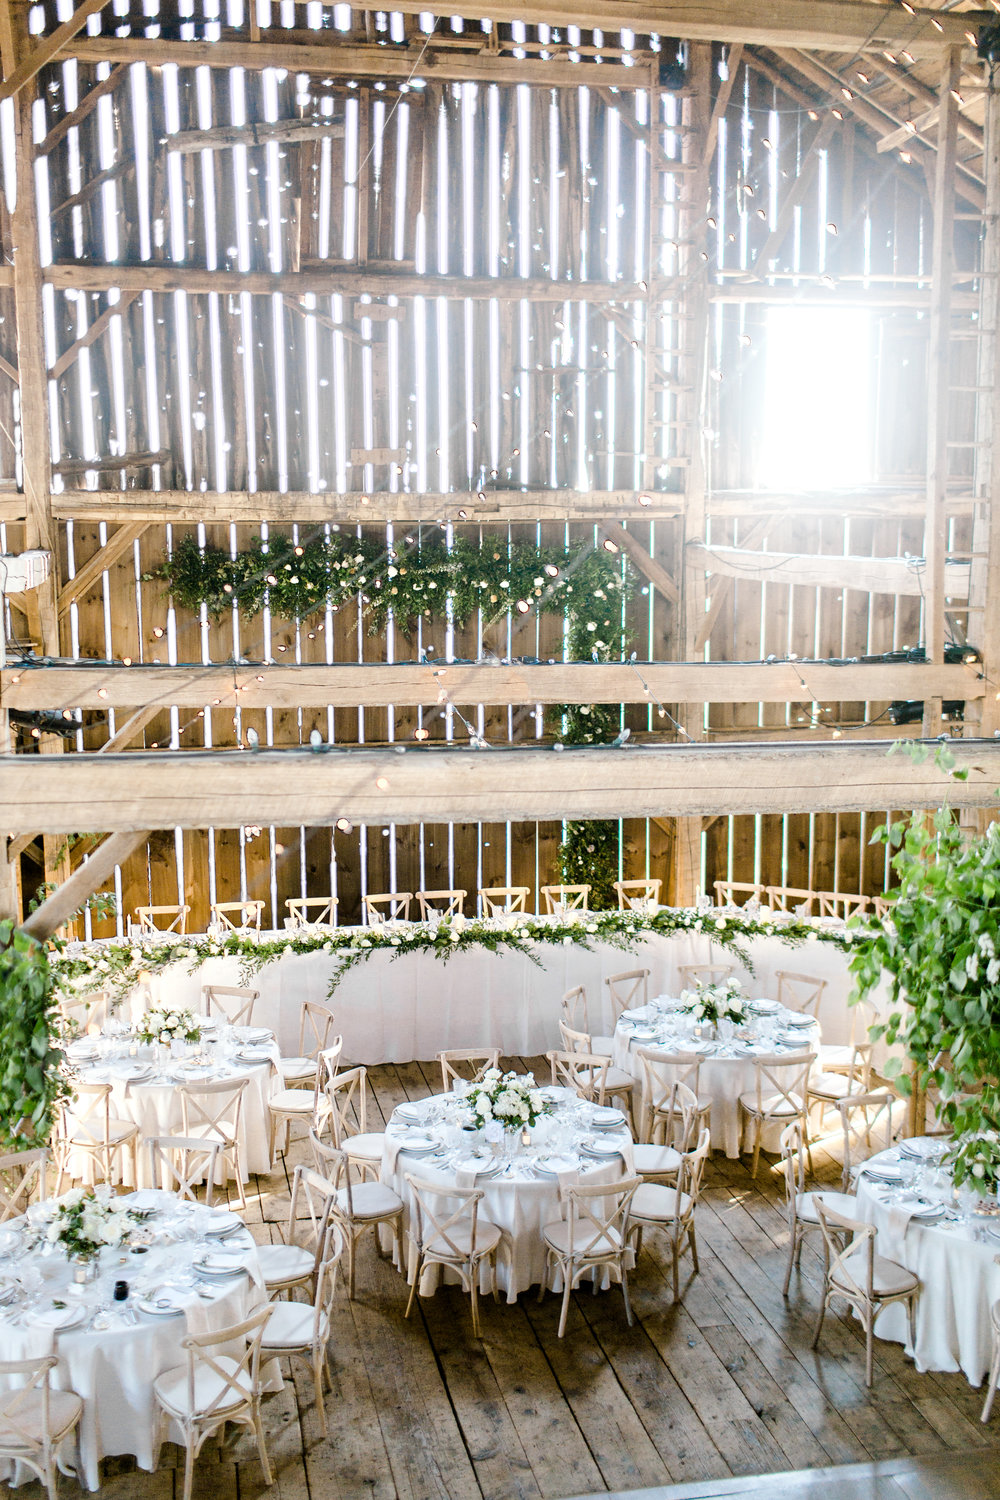 cambium-farms-kurtz-wedding-toronto-photographer-langdon-film-richelle-hunter-cori-joey-previews-6.jpg